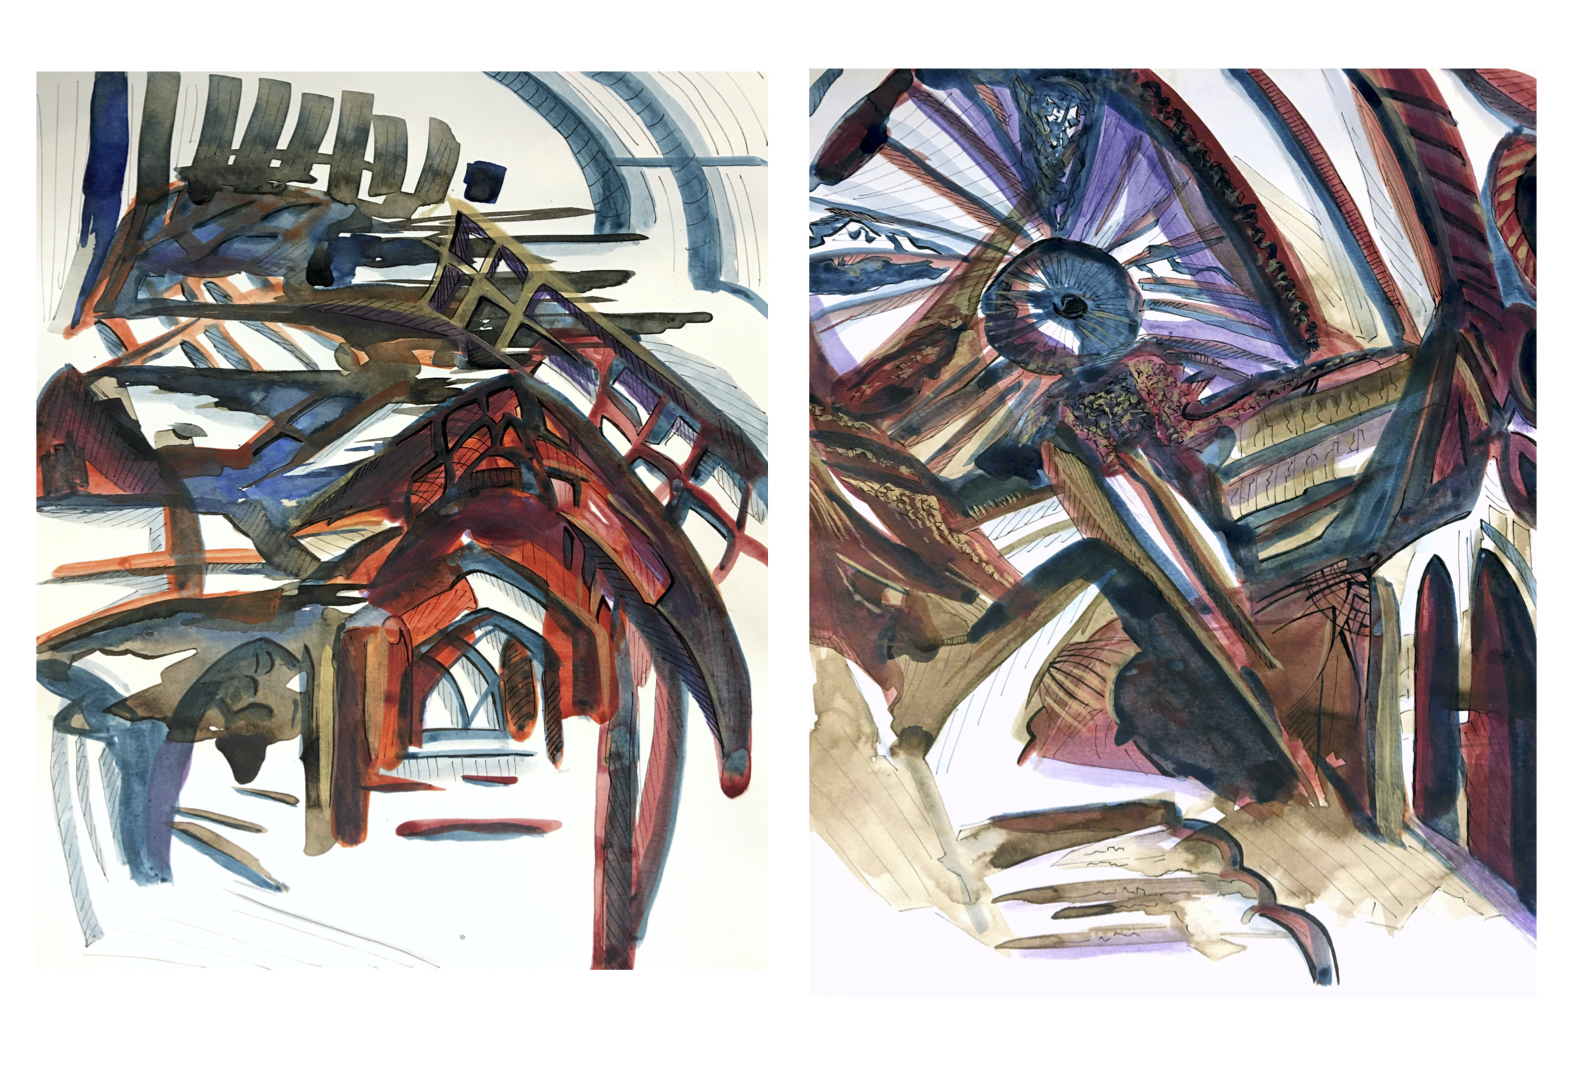 Studies of 17th Century Persian Architecture, acrylic on paper, 13.5x11 inches each, 2020